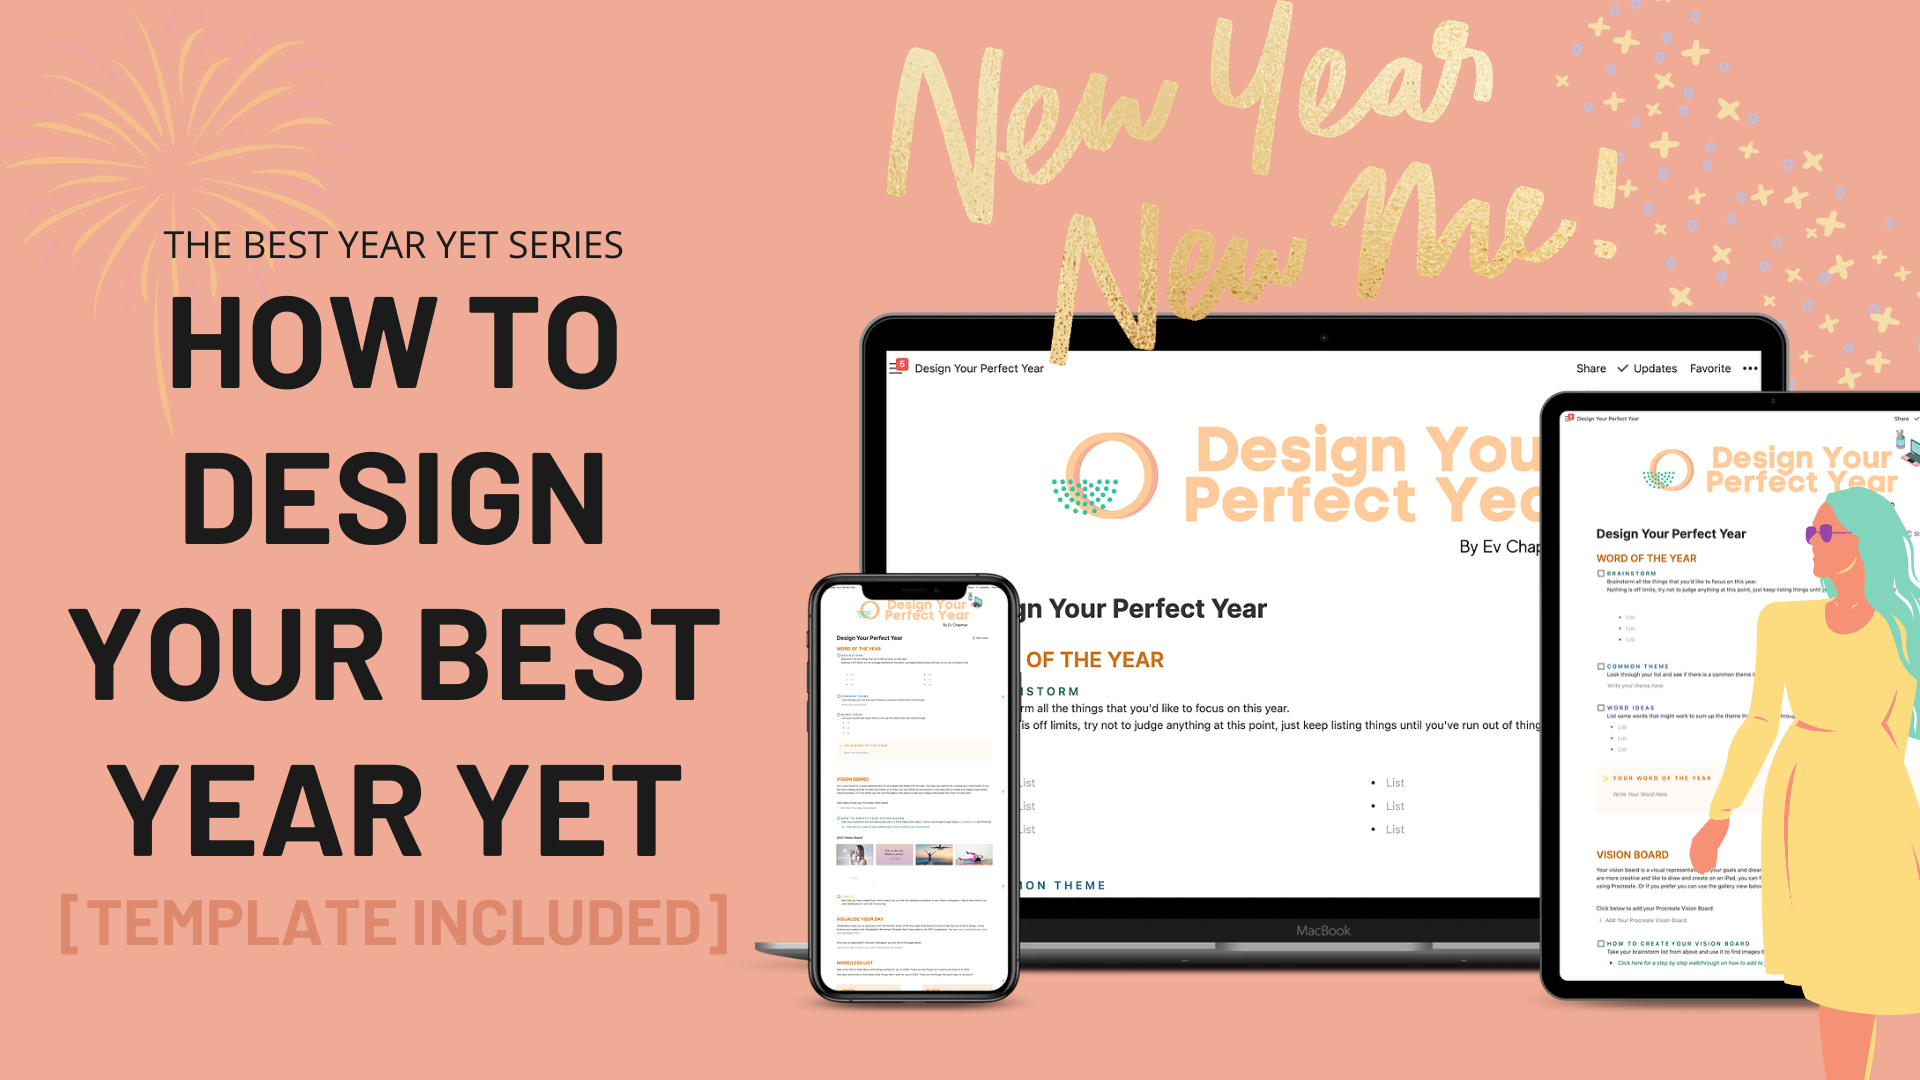 How To Design Your Best Year Yet